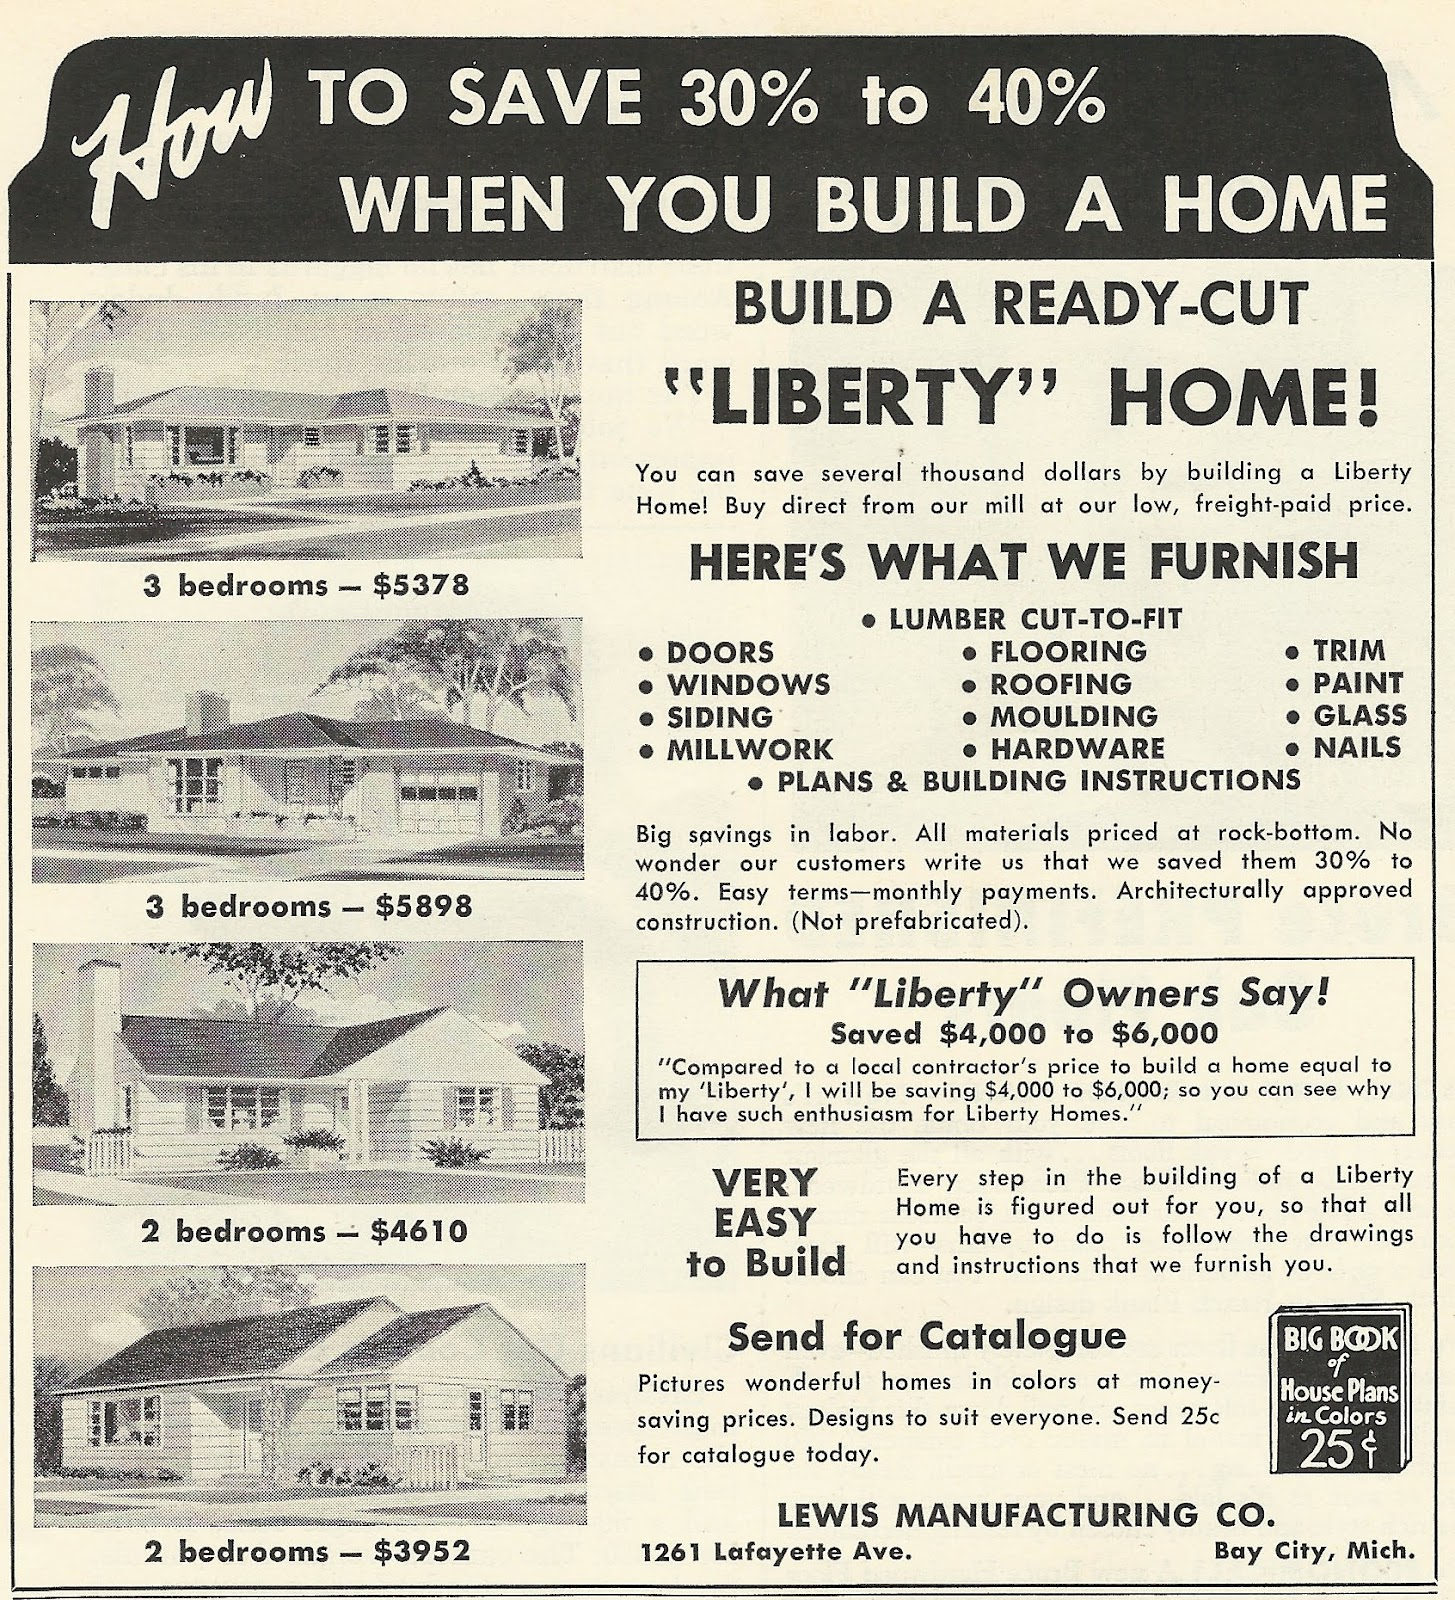 Old Ads Are Funny: 1956 Ad: Build a Ready-Cut